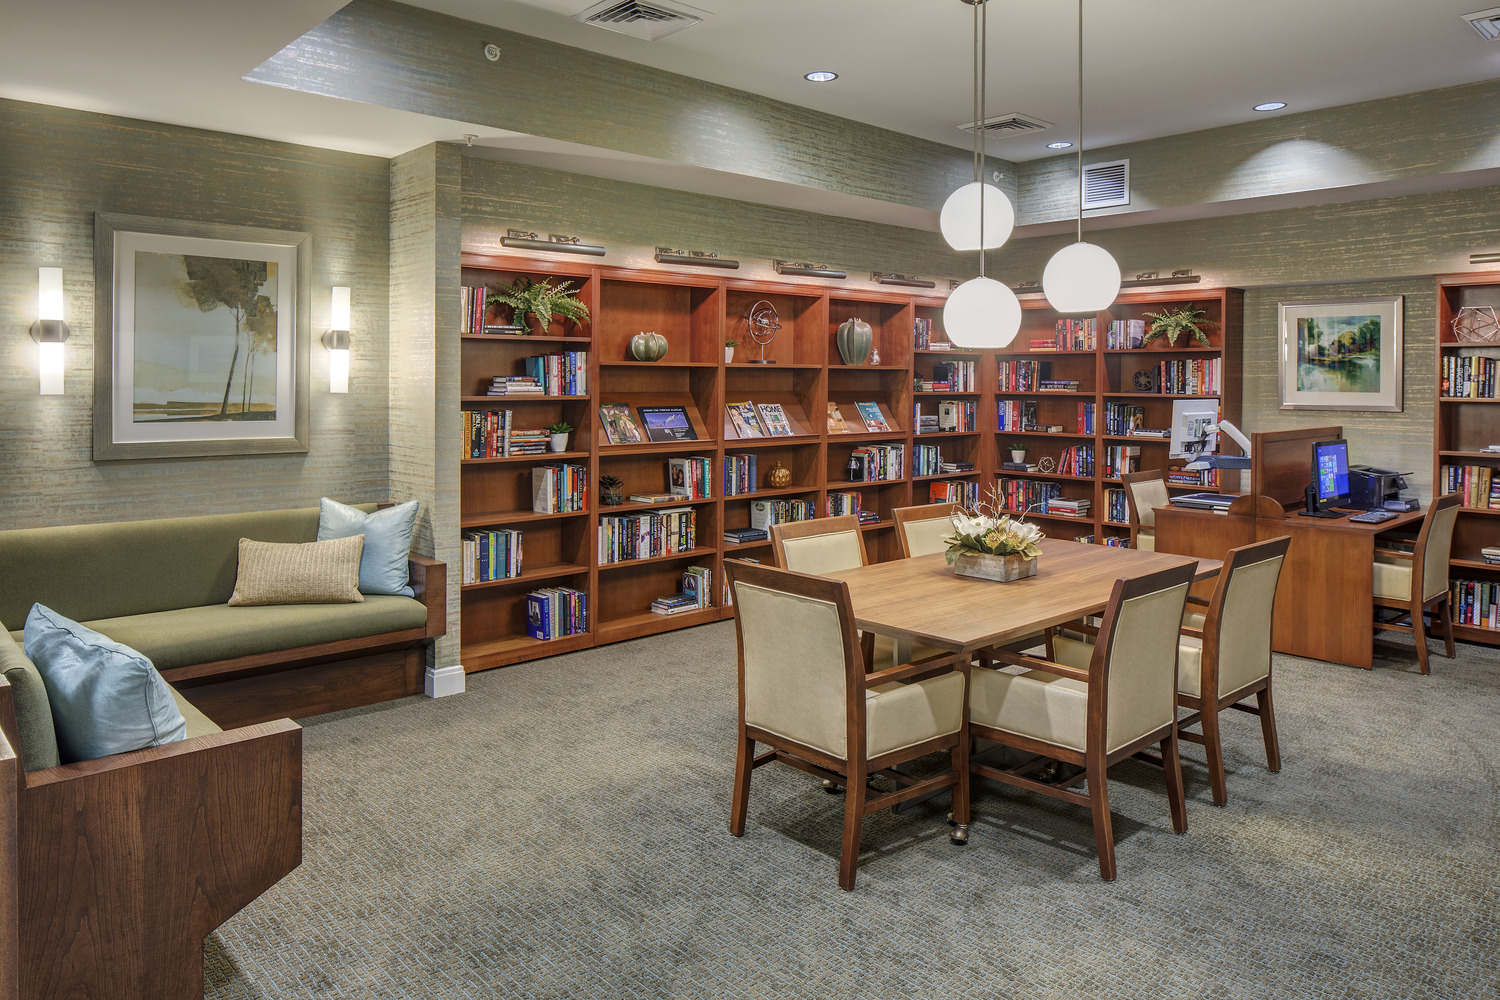 CBG builds Brightview Woodburn, a 94-Unit Senior Assisted-Living Facility with Expansive Common Areas in Annandale, VA - Image #3